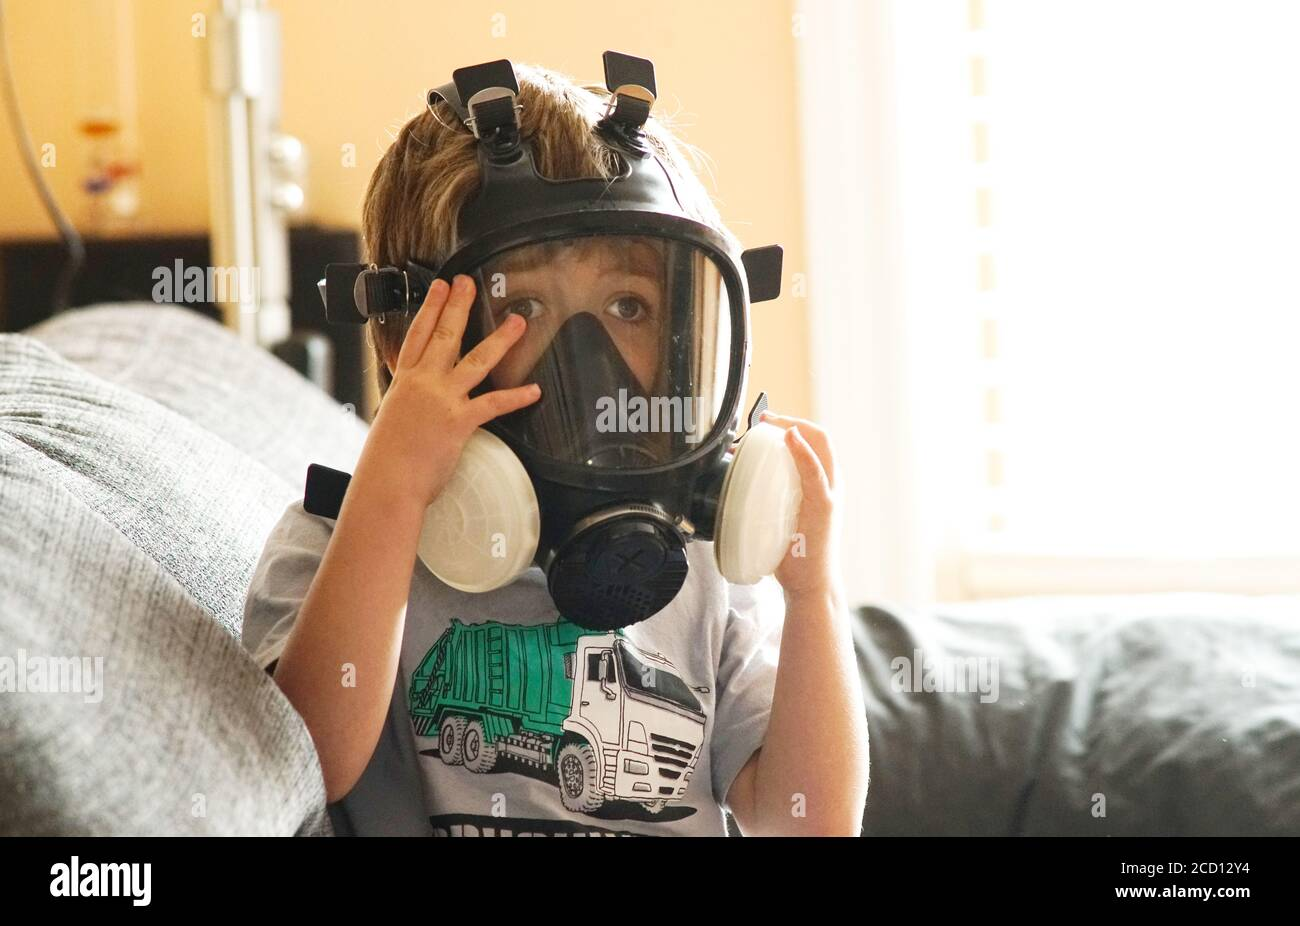 Montreal,Quebec,Canada,August 25, 2020.Young 5 year-old boy wearing. a gas mask.Credit:Mario Beauregard/Alamy News Stock Photo